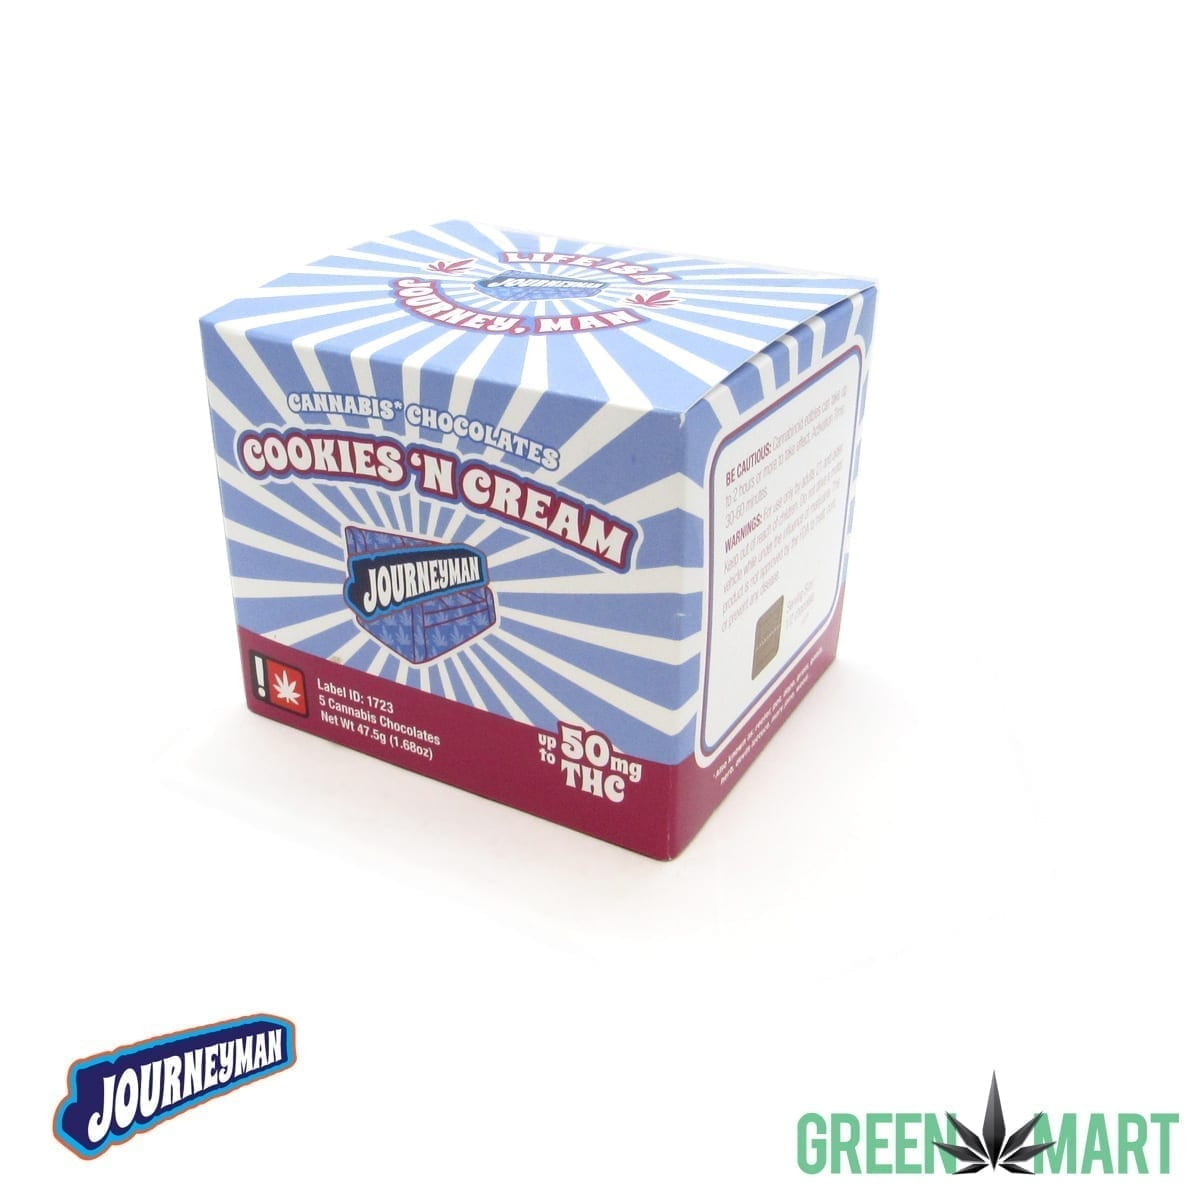 Journeyman Cookies N Cream Box